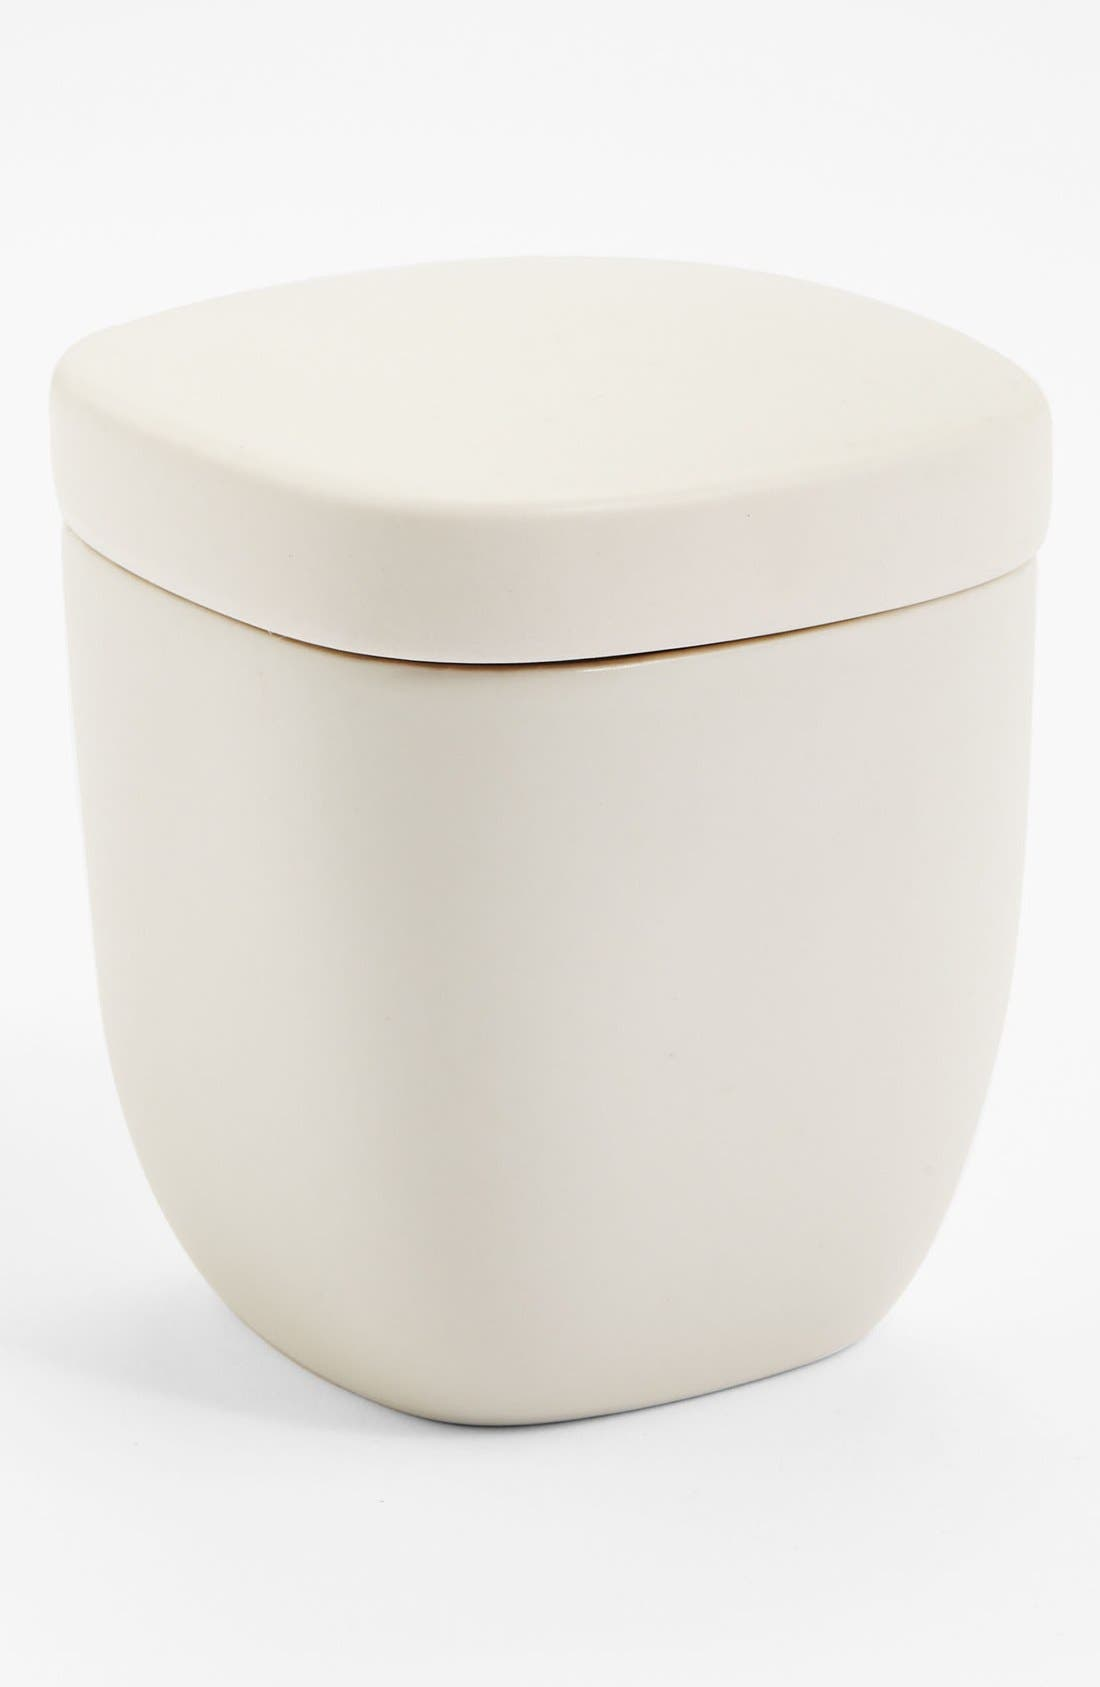 Main Image - Waterworks Studio 'Modern' Ceramic Covered Jar (Online Only)